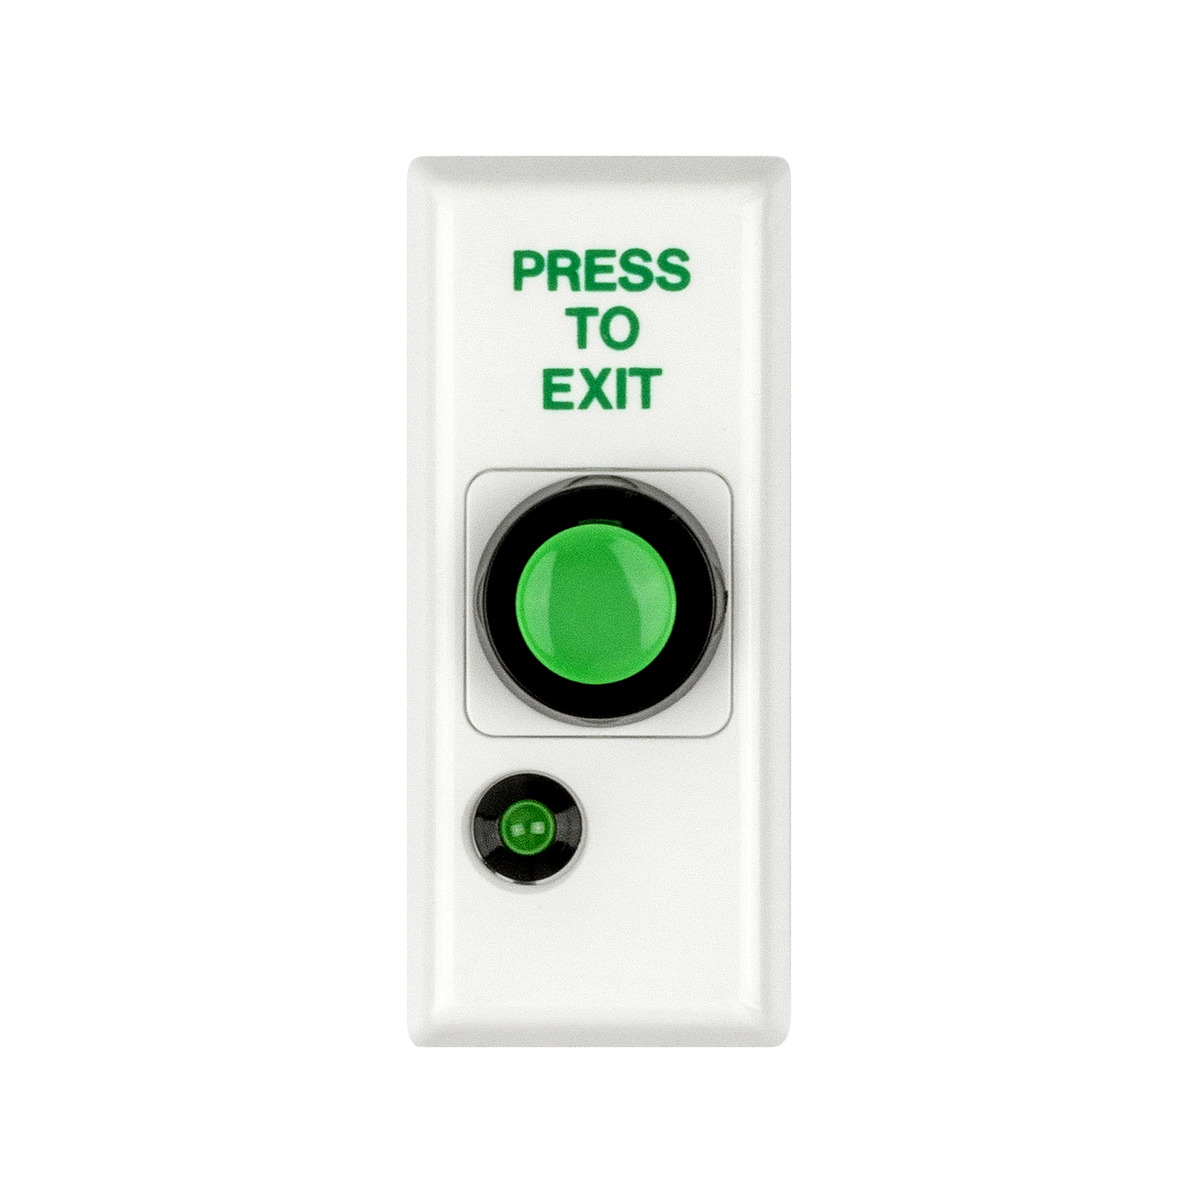 Press to Exit Switch GDR Architectural